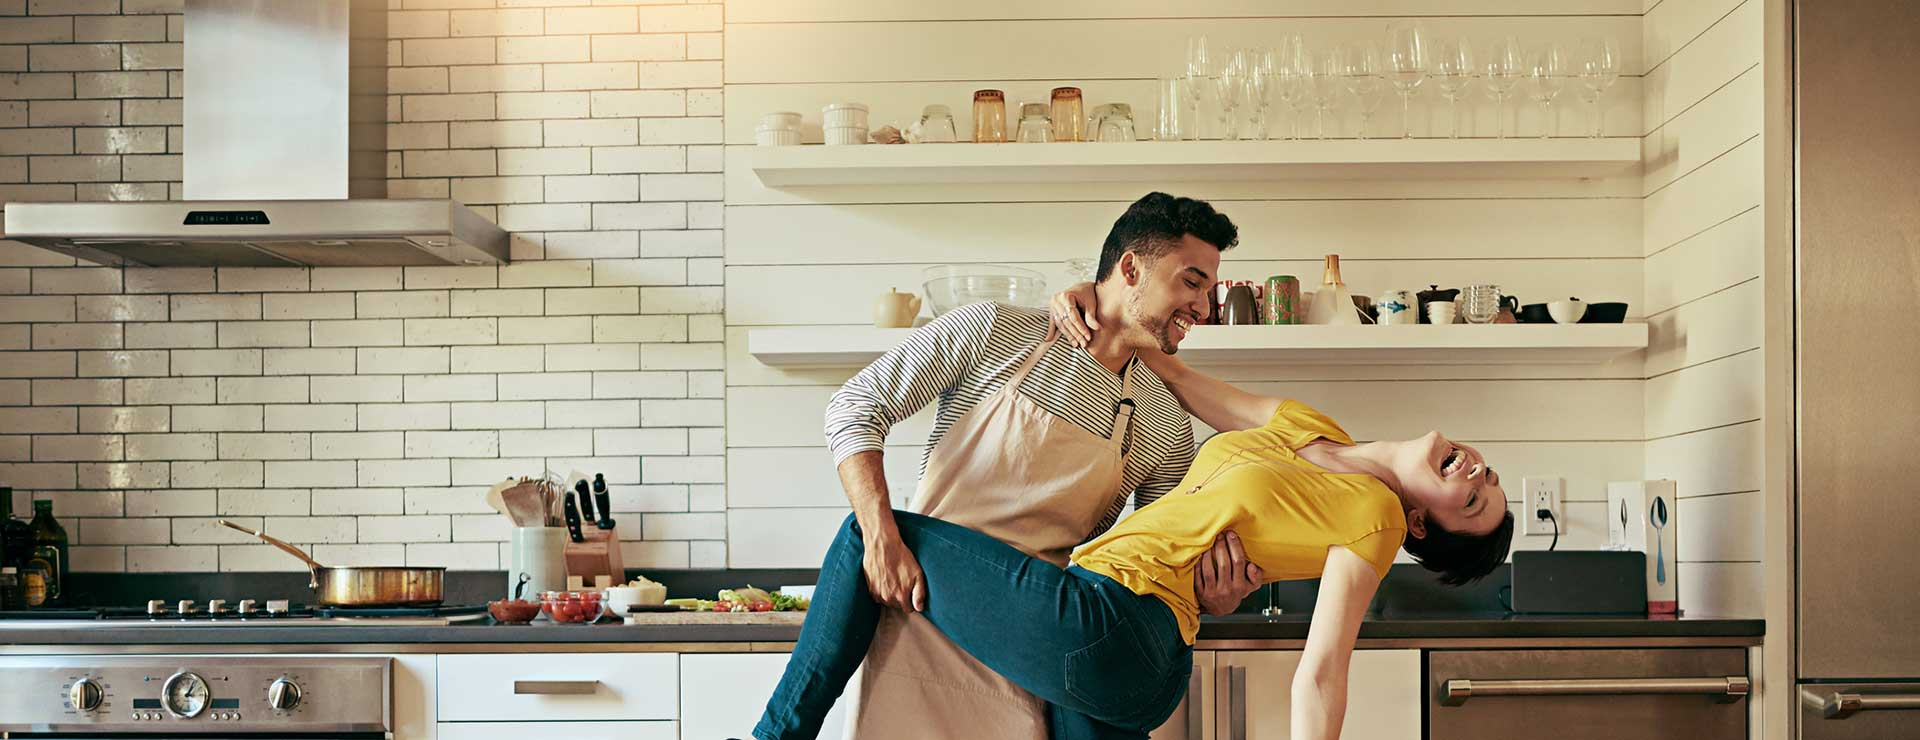 A couple dancing in the kitchen